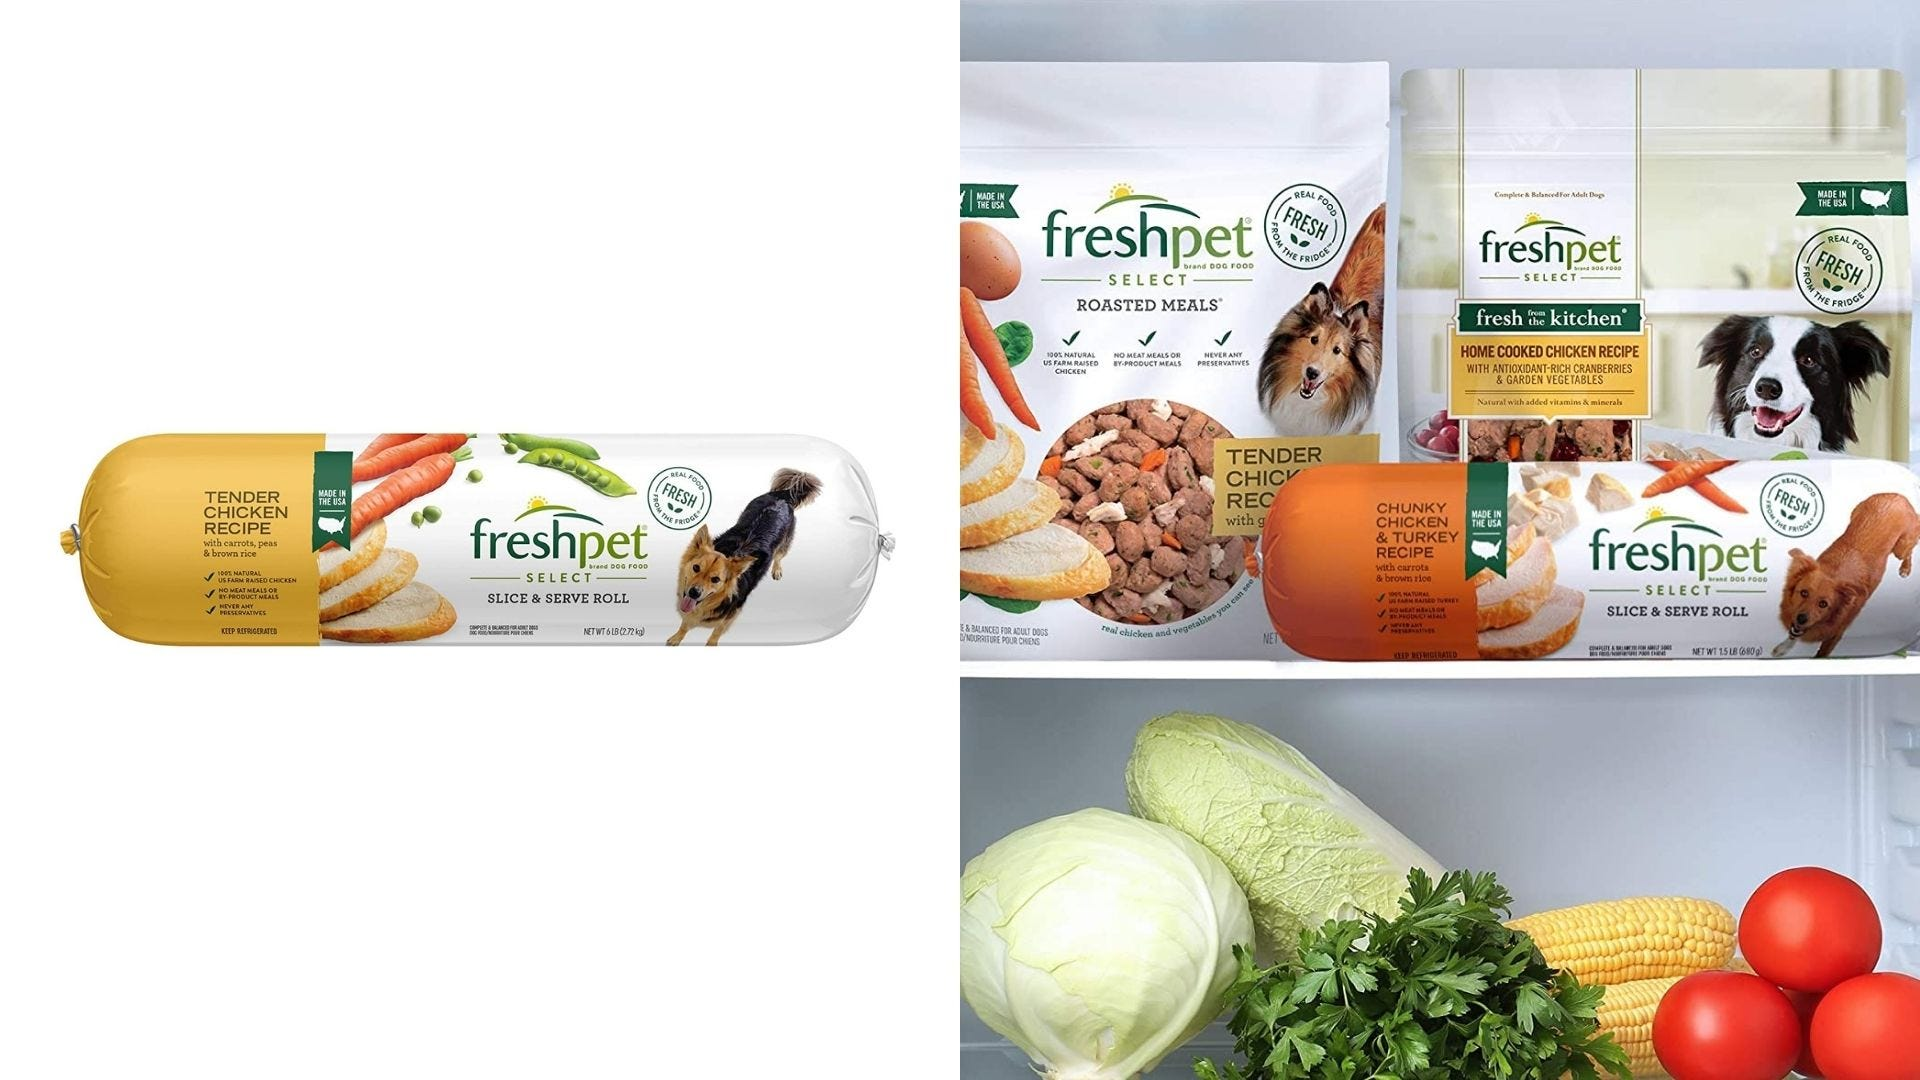 A roll of fresh dog food and packaged of fresh dog food in a refrigerator